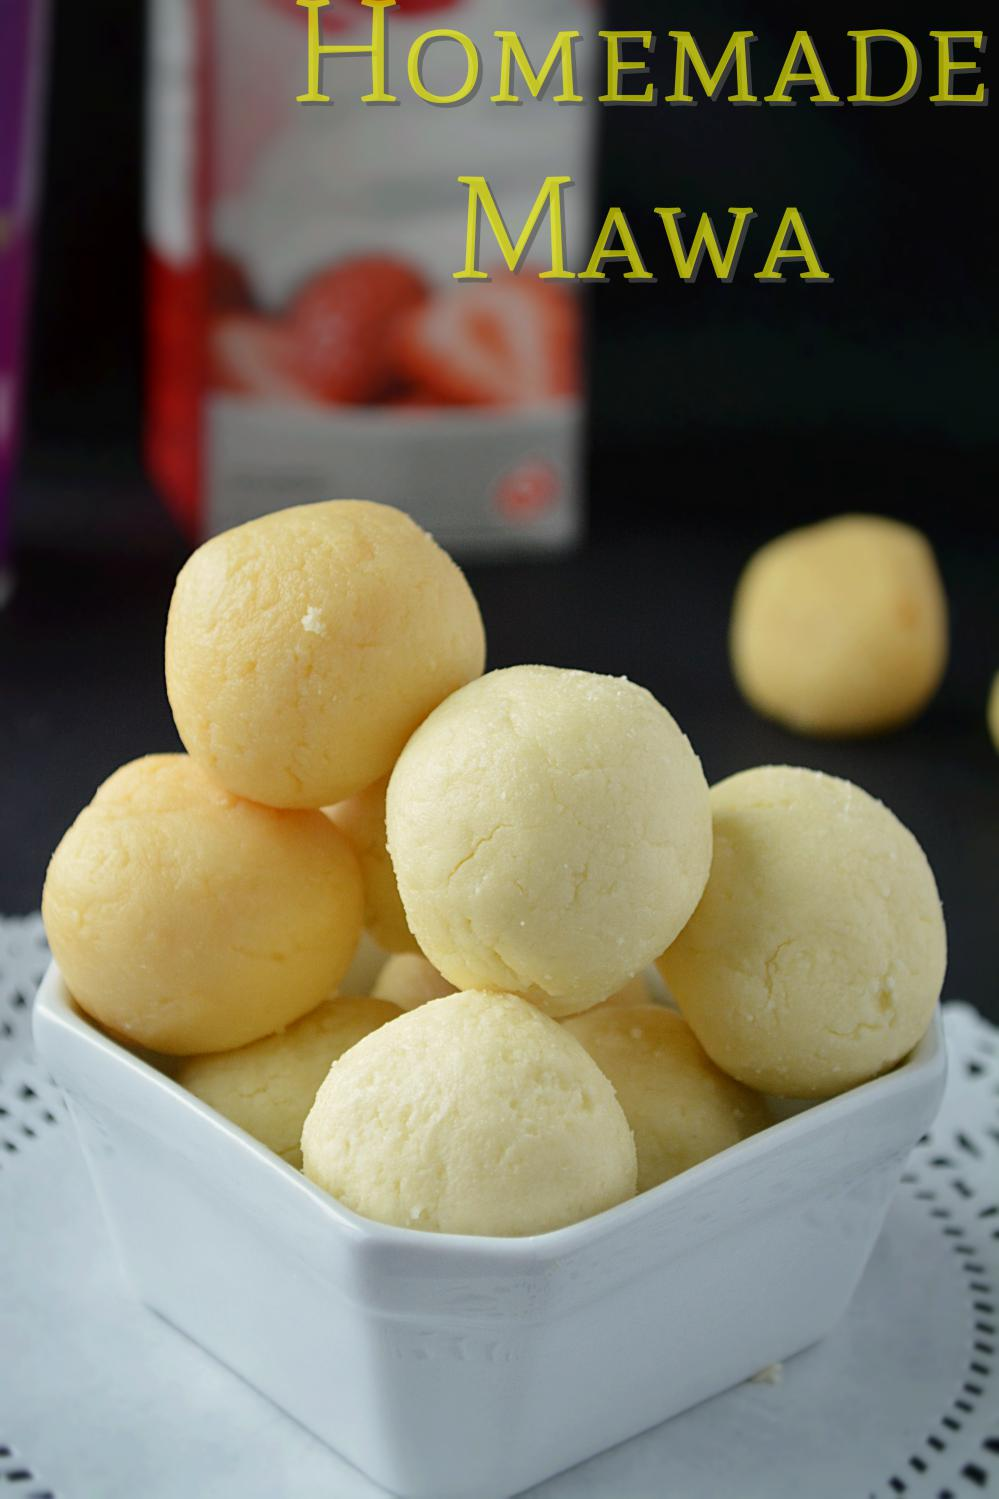 How to make mawa - 5 ways of making mawa image